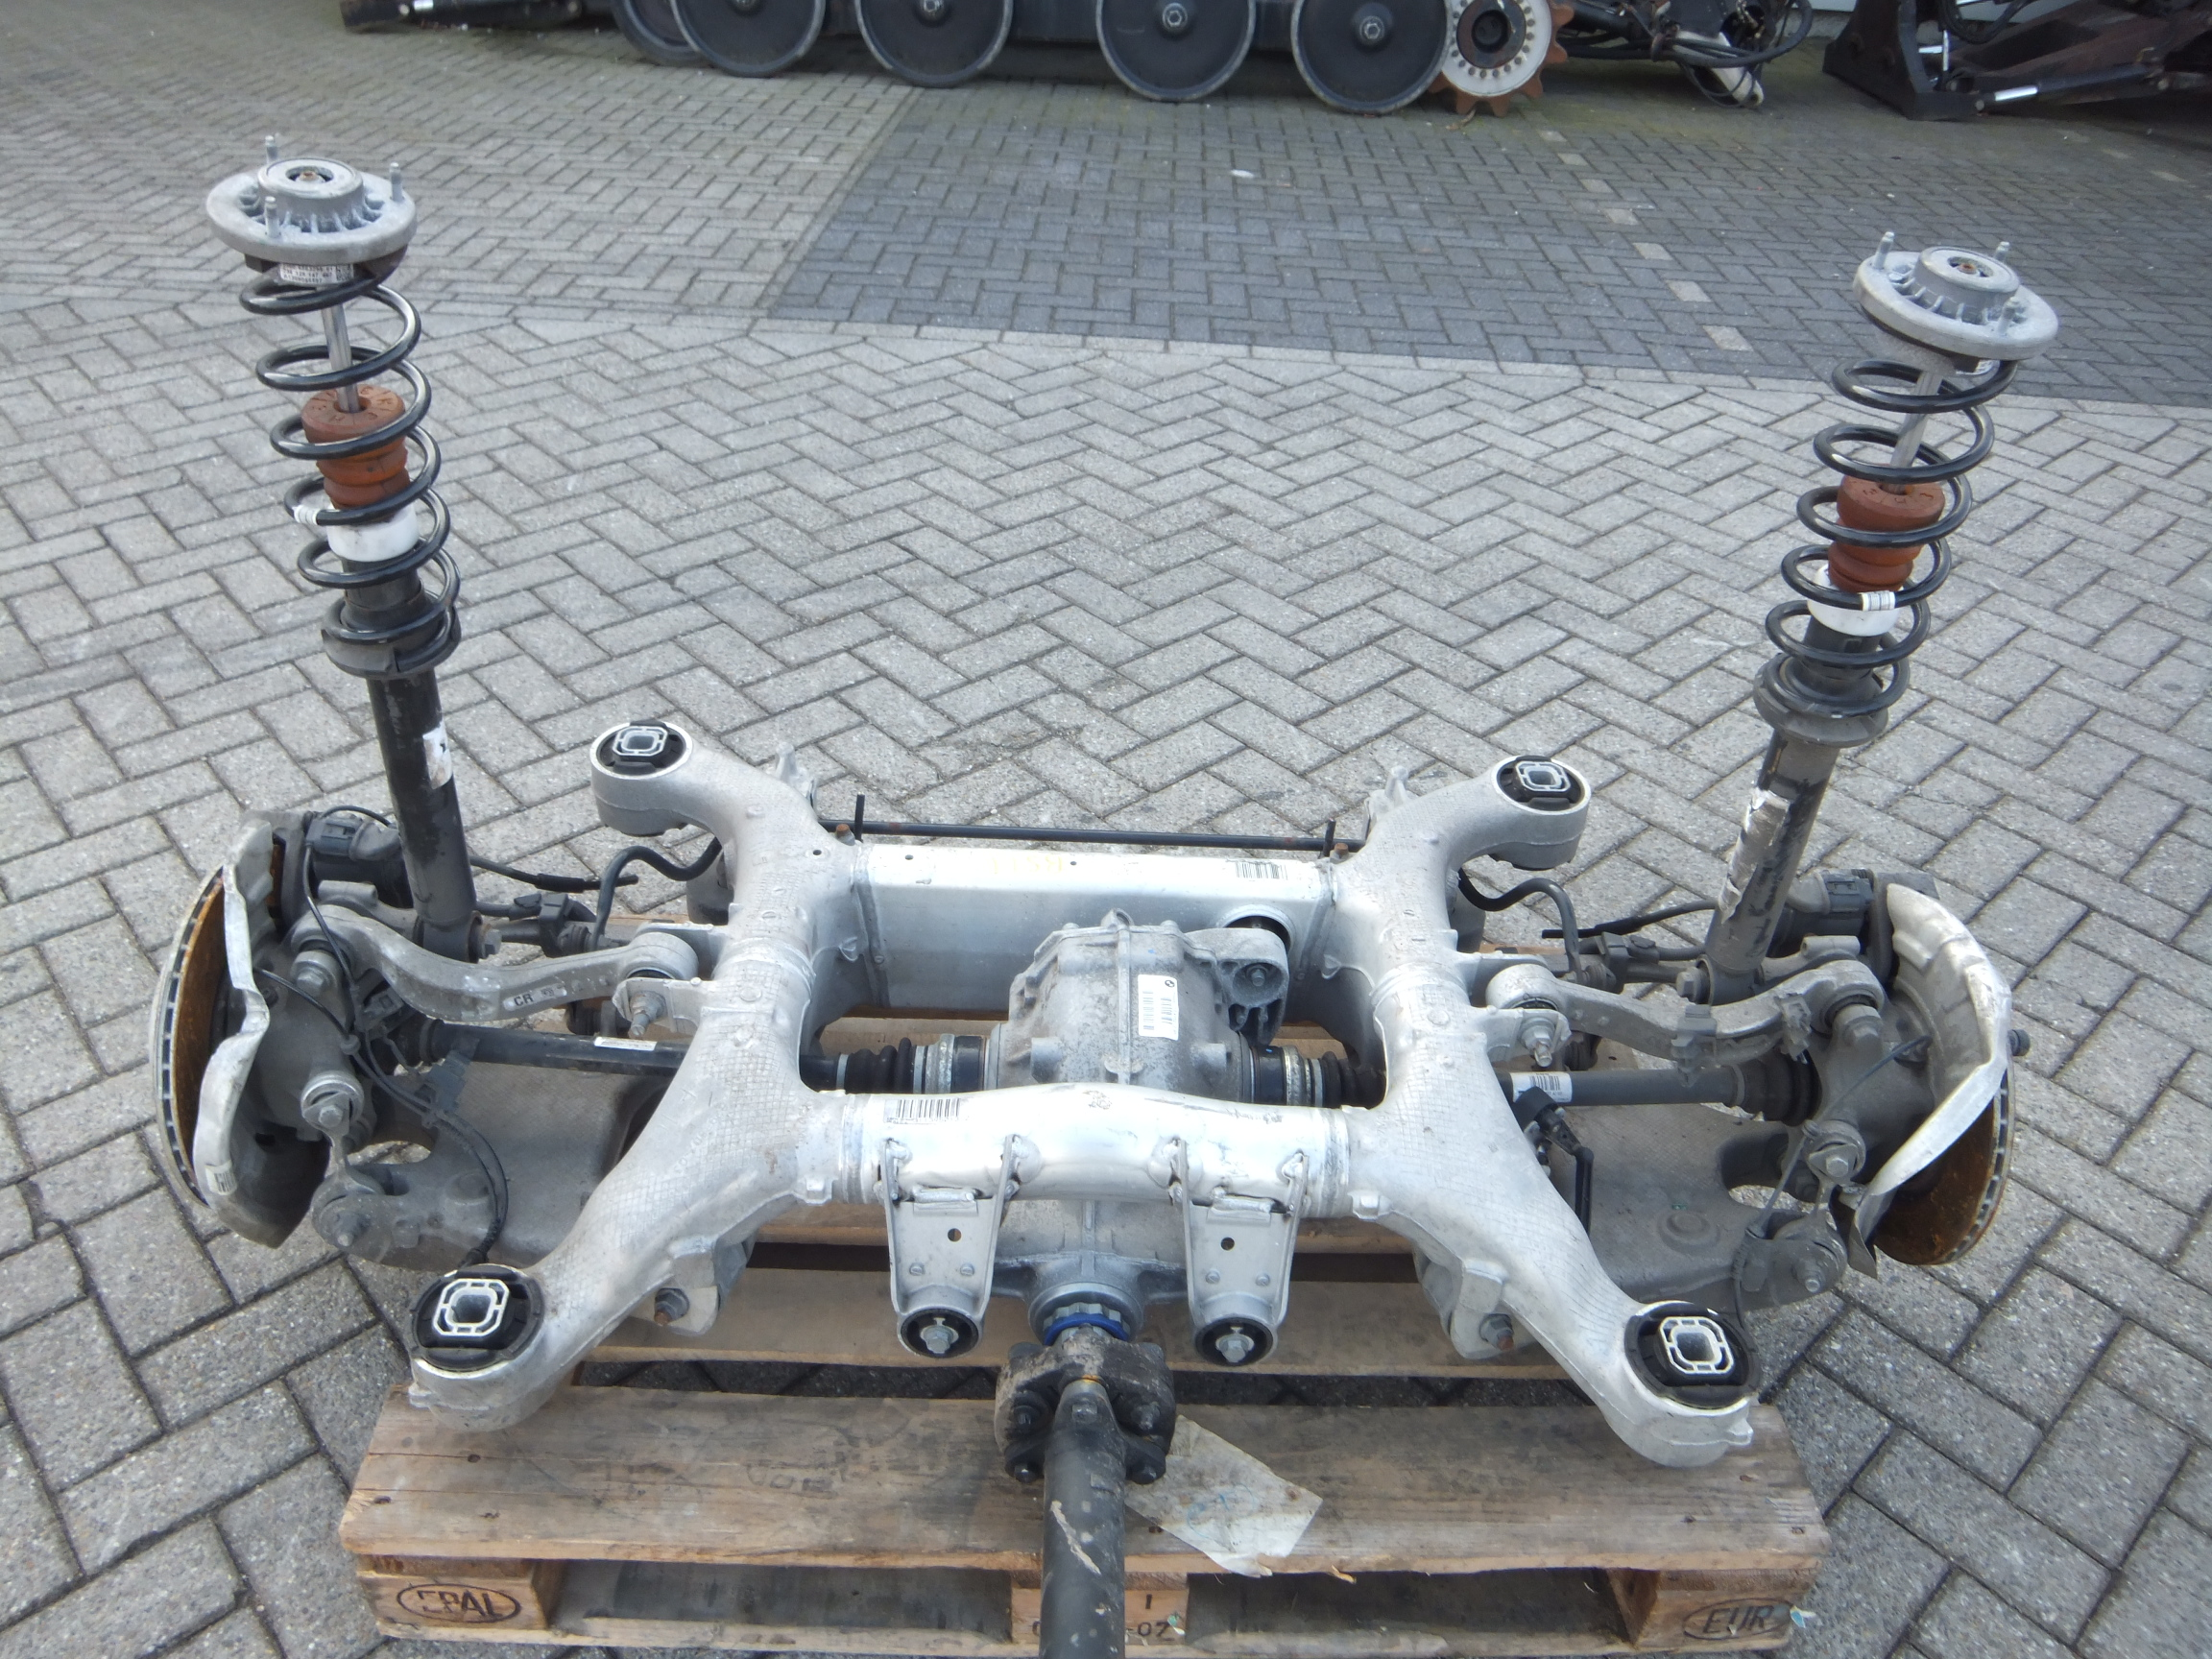 BMW 520D F10 REAR AXLE CARRIER 6798545 COMPLETE WITH DIFFERENTIAL 7584450 SUSPENSION AXLES 09-2013